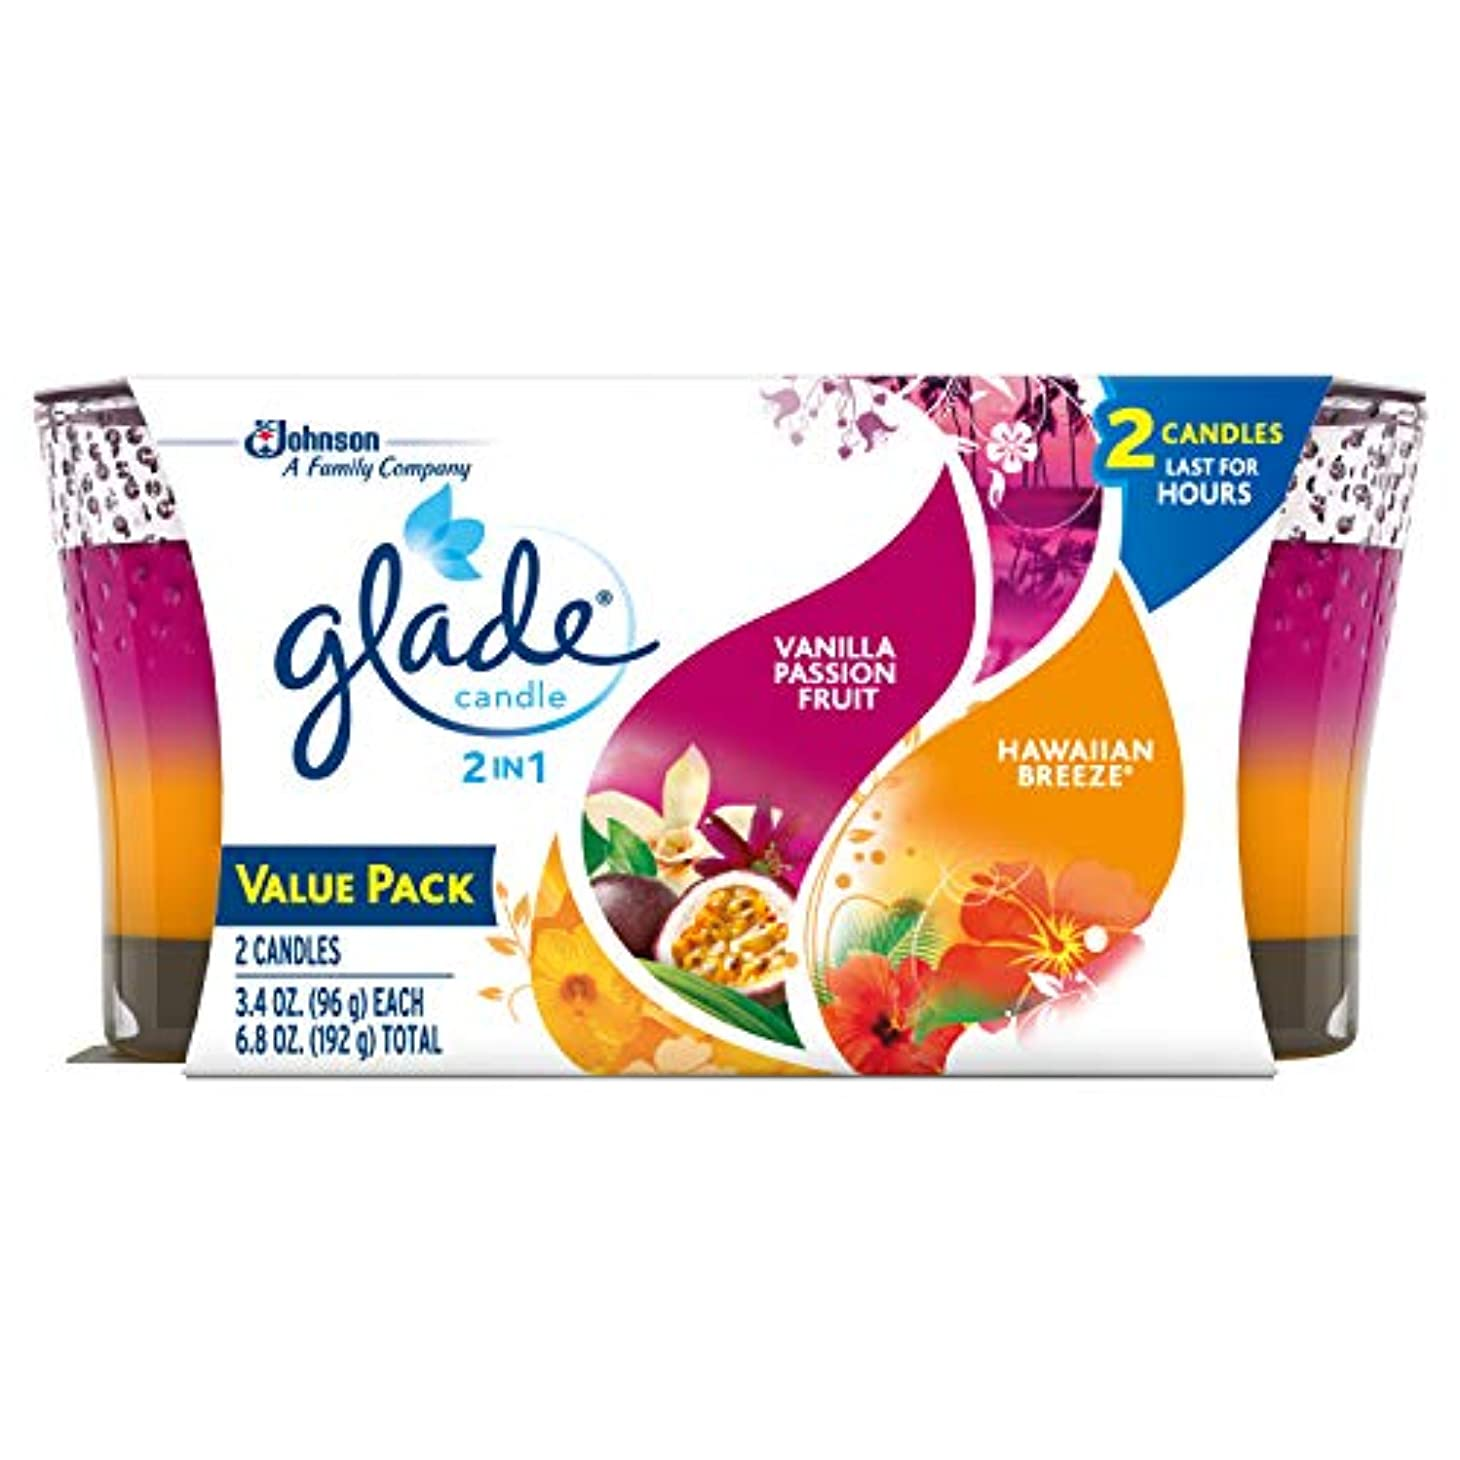 Glade 2in1 Jar Candle Air Freshener, Hawaiian Breeze and Vanilla Passion Fruit, 2 count, 6.8 Ounce by Glade